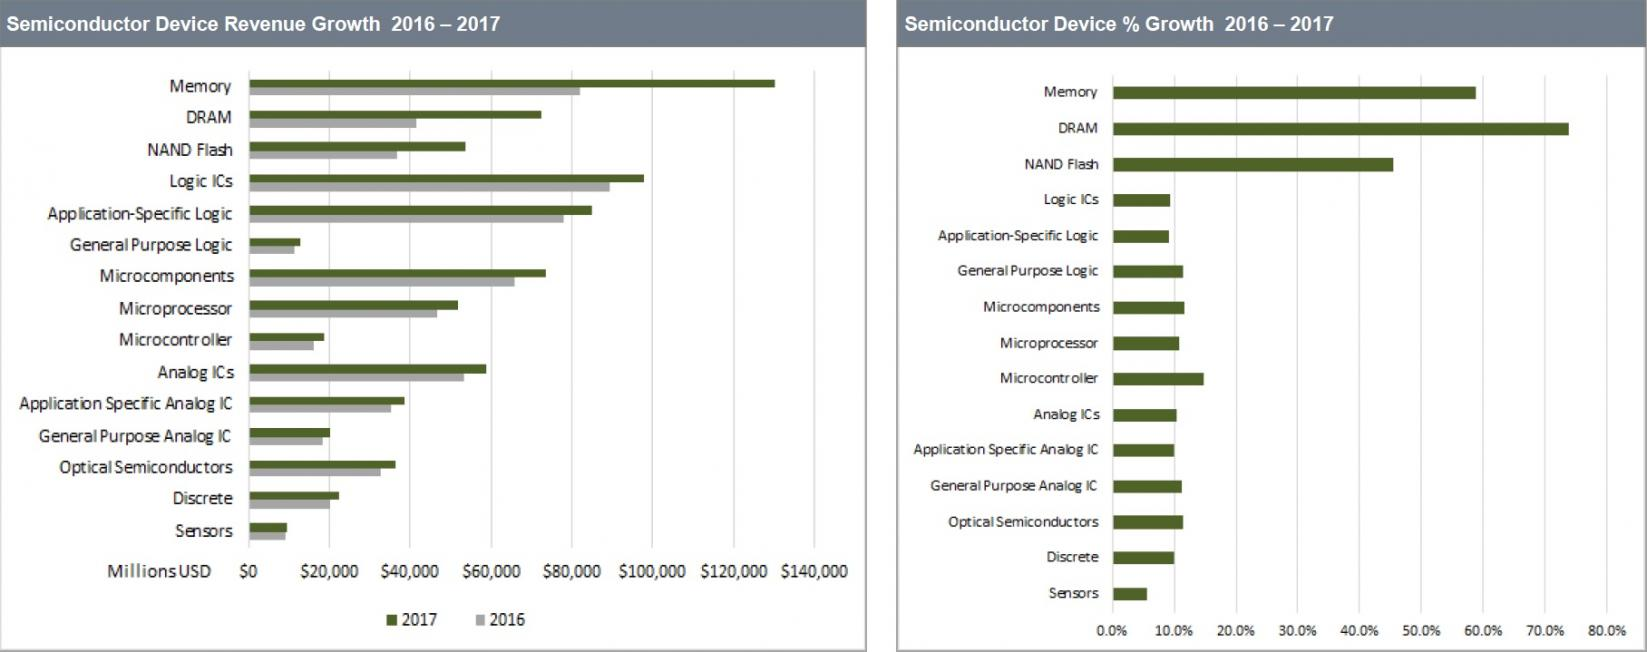 21031-ihs-semiconductor-growth-2016-2017.jpg